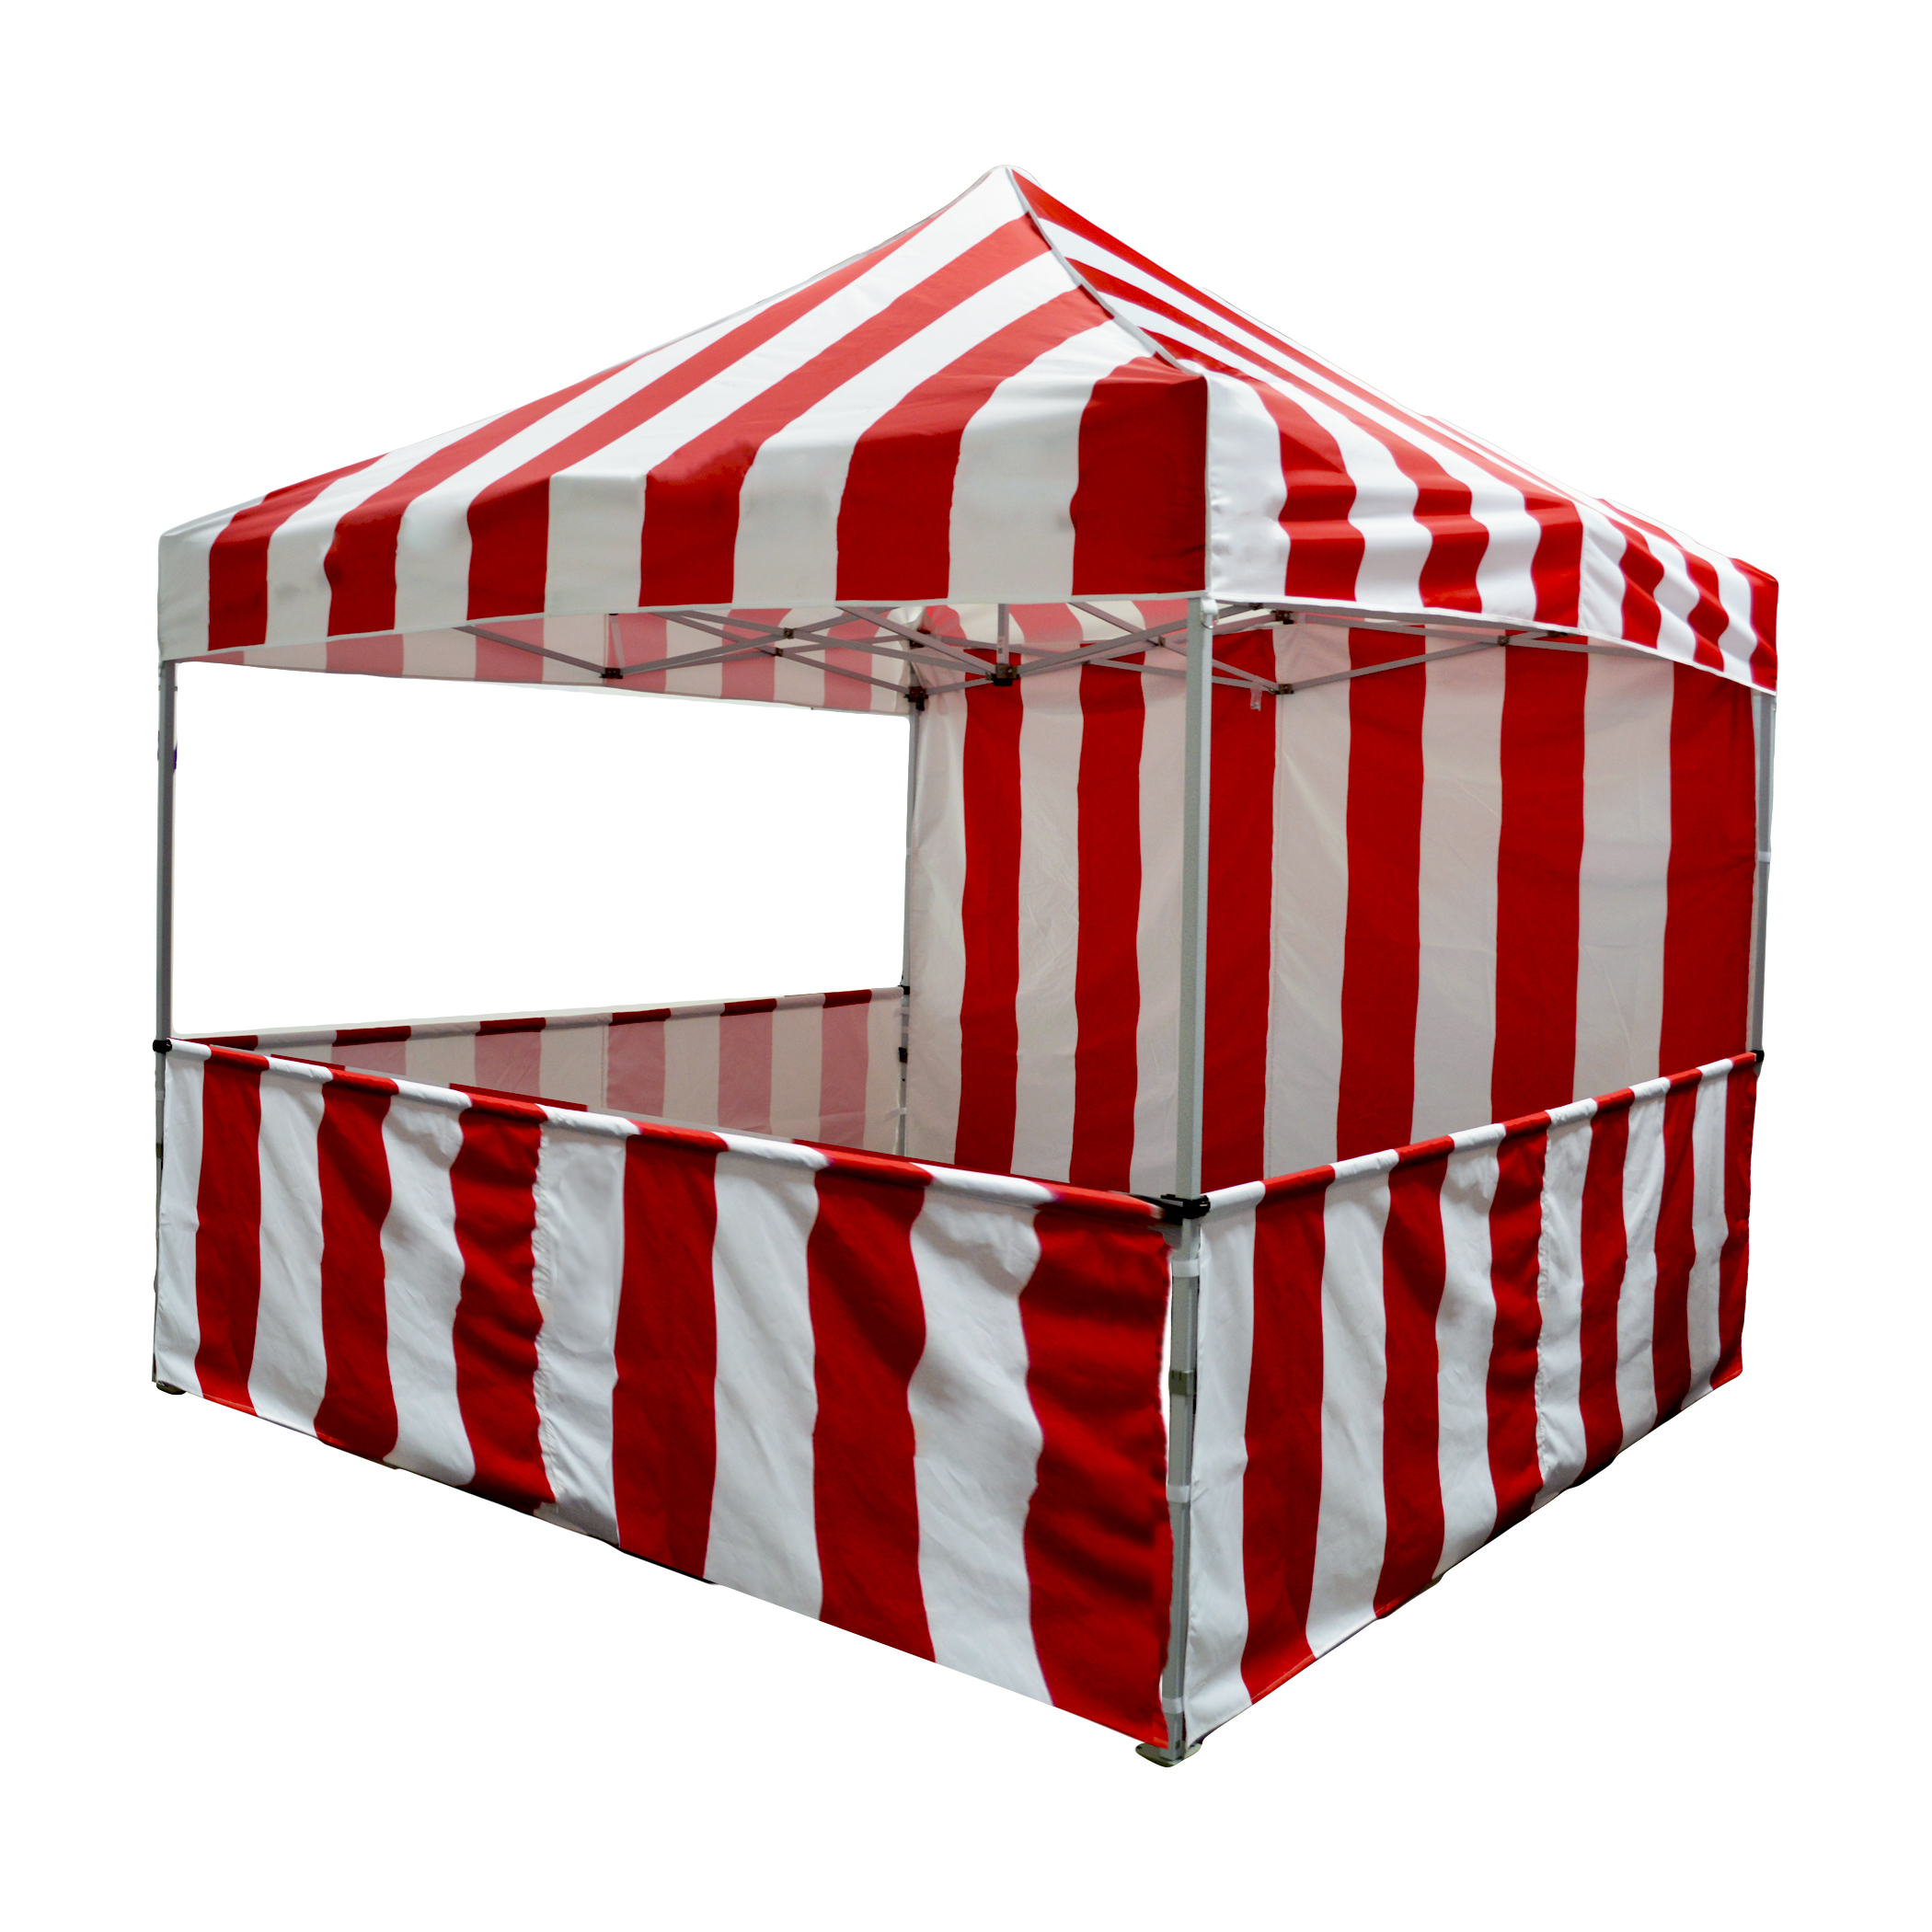 Impact Canopy Carnival Booth Kit 10'x10', Vendor Booth Red & White